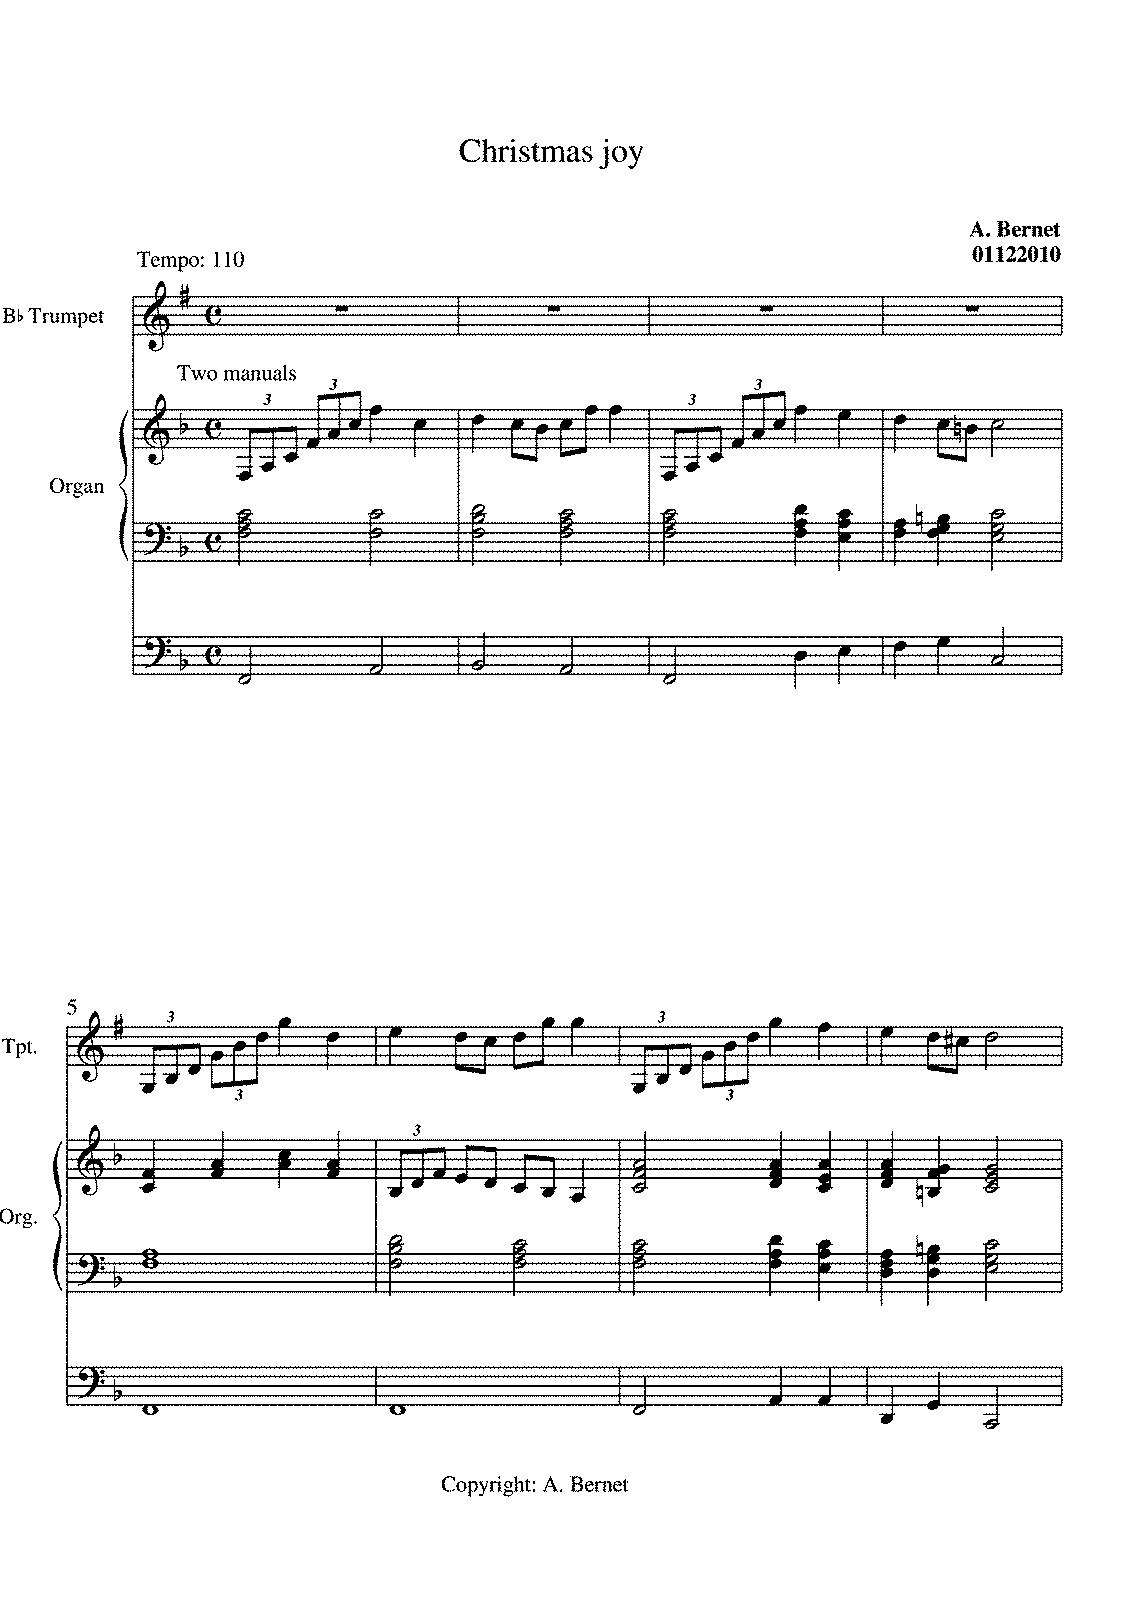 PMLP415933-Finale NotePad 2008 - -CHRISTMAS JOY trumpet and organ.pdf